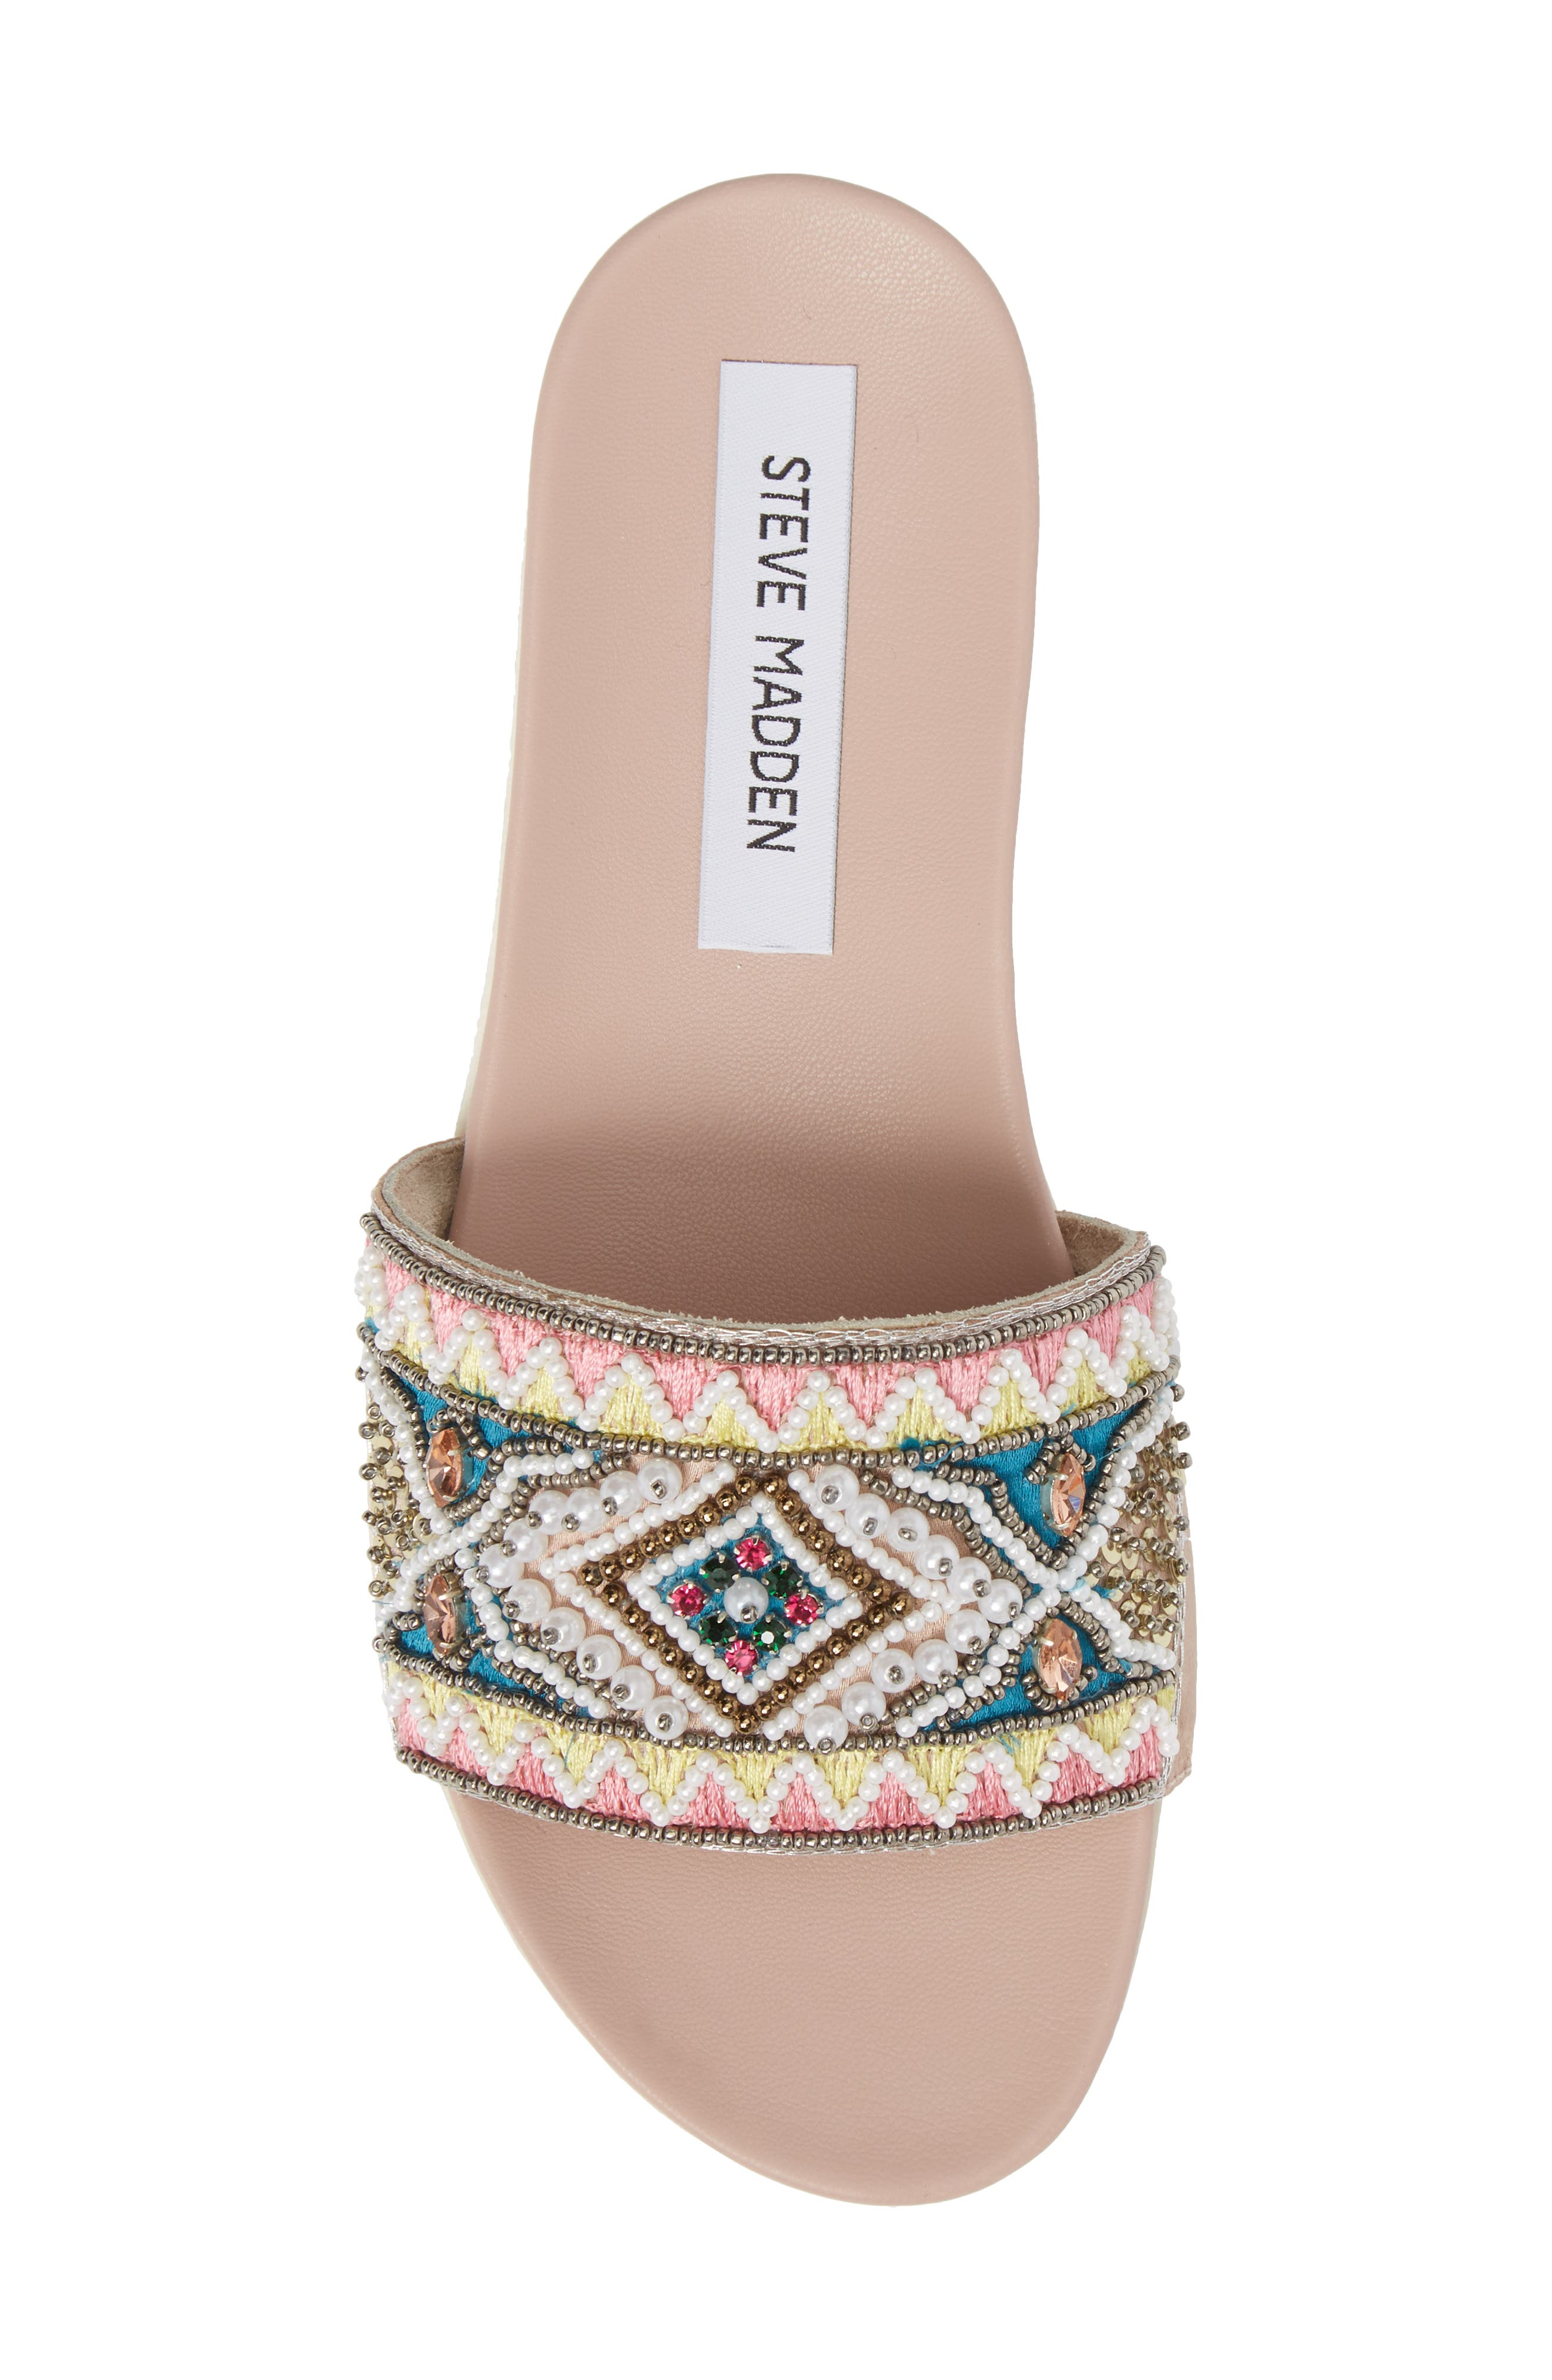 Thalia Beaded Slide Sandal,                             Alternate thumbnail 5, color,                             400